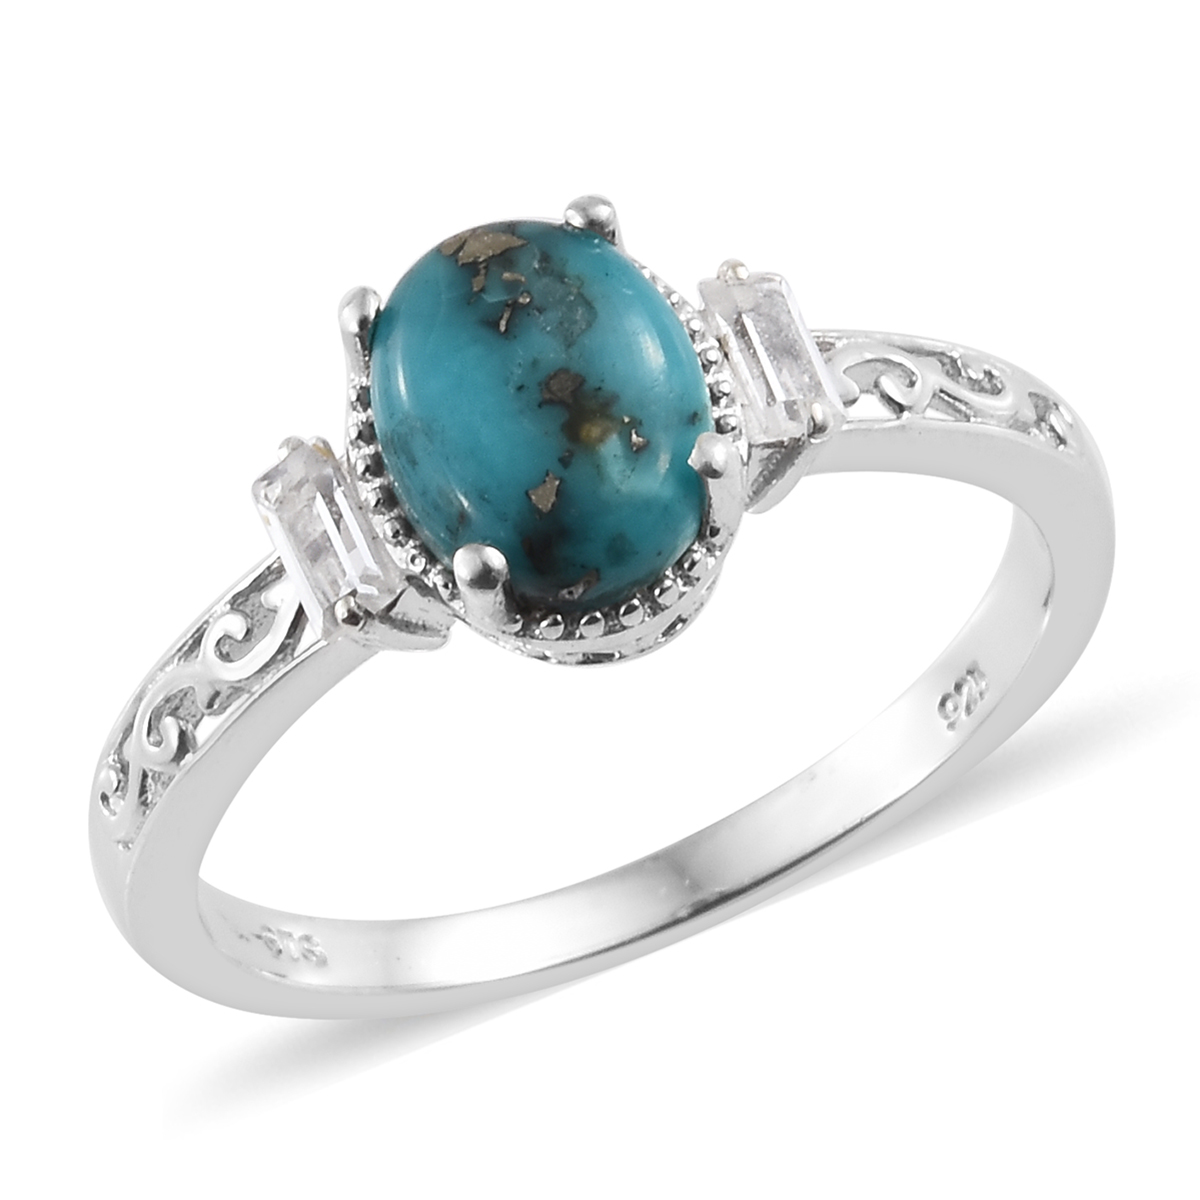 bb87cc84d Persian Turquoise, White Topaz Platinum Over Sterling Silver Ring (Size  6.0) TGW 2.05 cts. | Shop LC